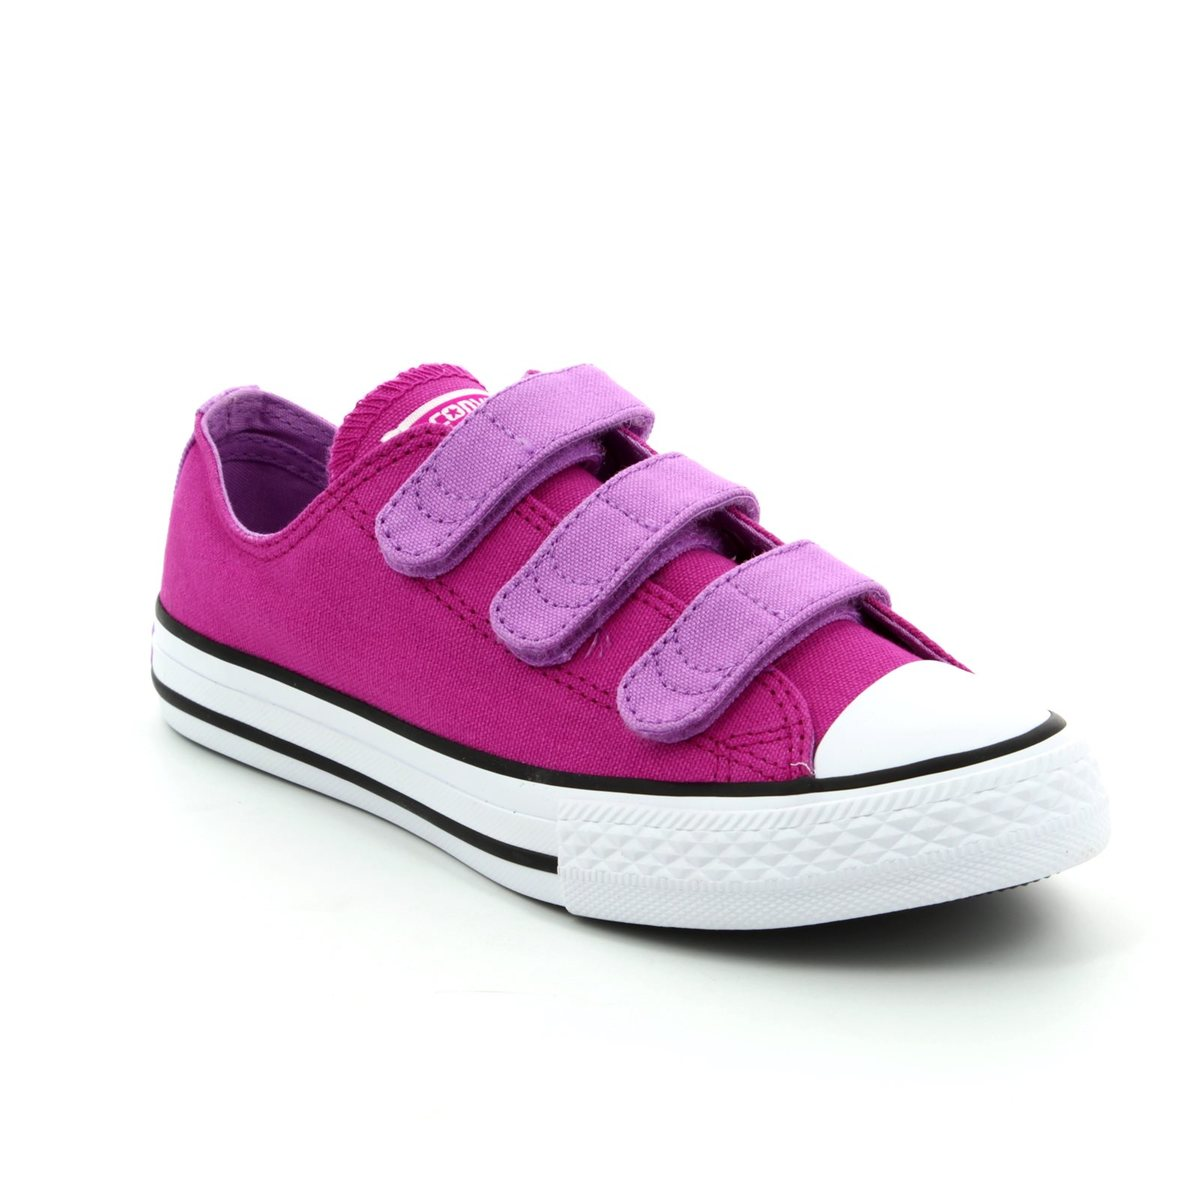 e9bcf4ffc3b08f Converse Trainers - Purple - 656016C Chuck Taylor All Star 3V OX Velcro